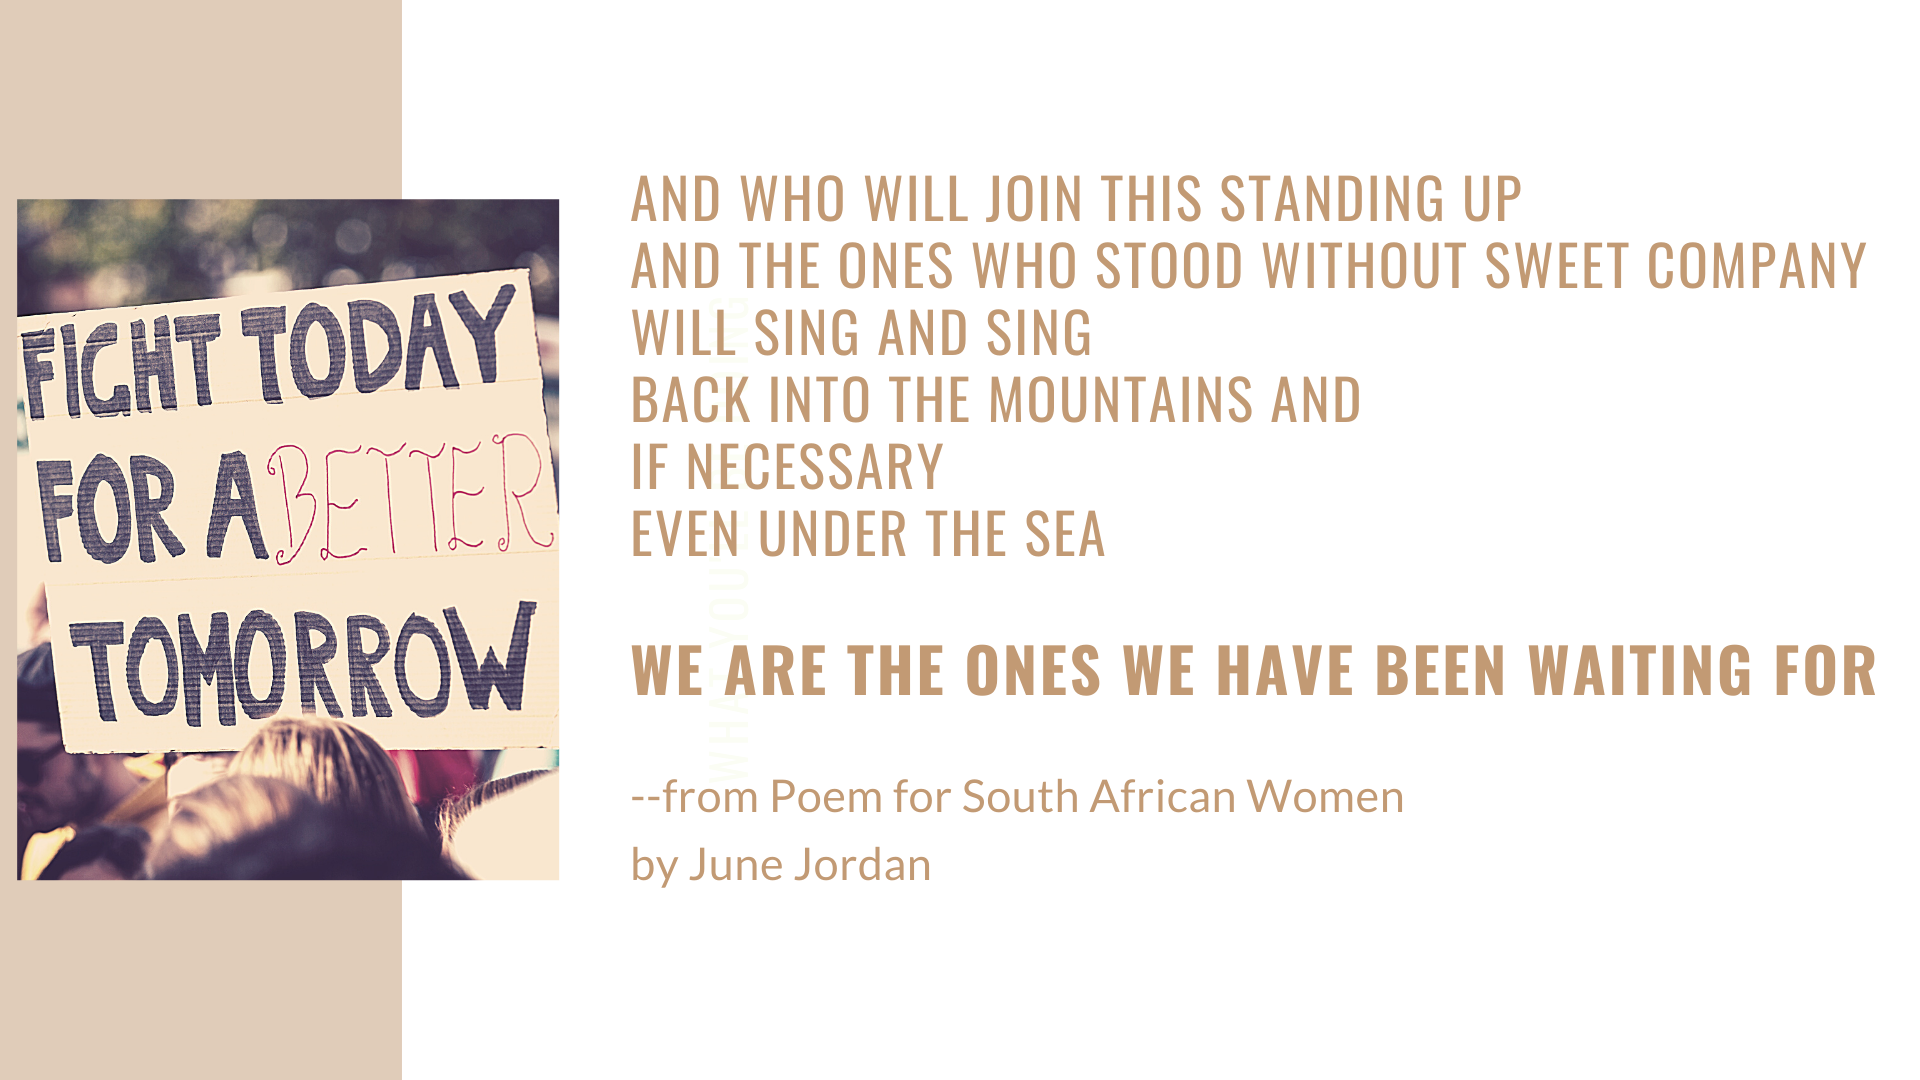 And who will join this standing up and the ones who stood without sweet company will sing and sing back into the mountains and if necessary even under the sea  we are the ones we have been waiting for. Quote from June Jordan